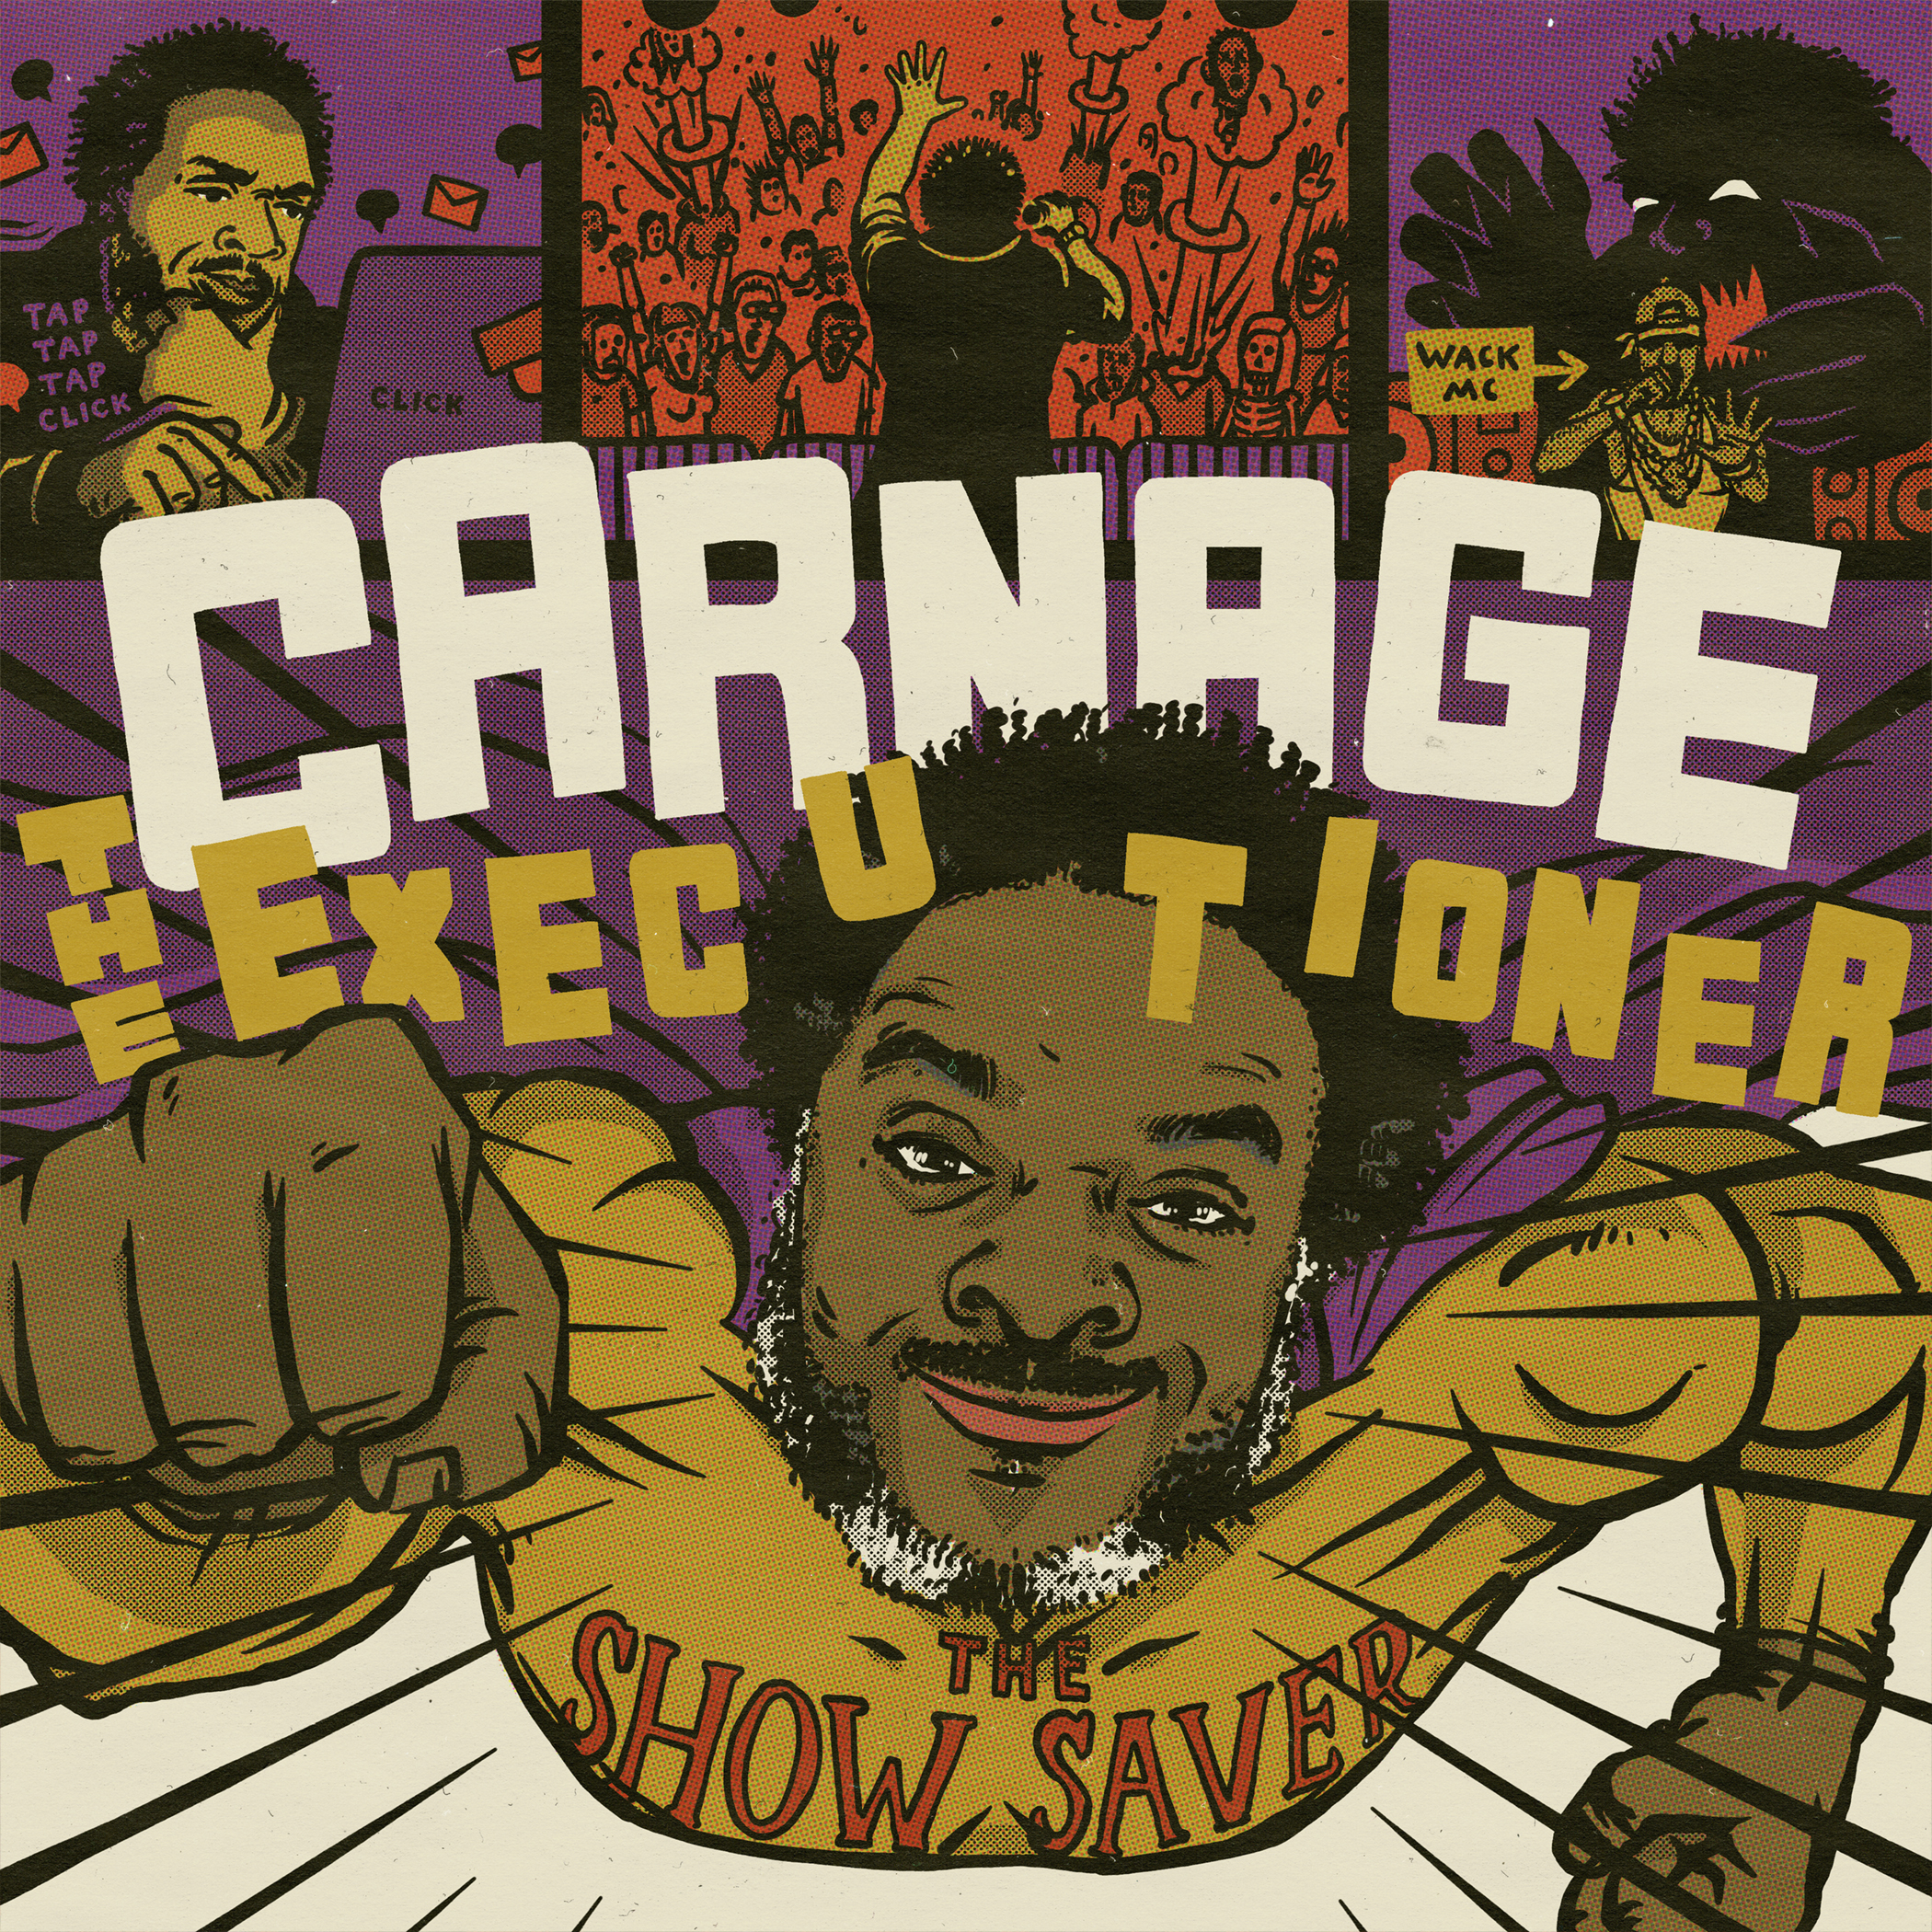 carnage-the-executioner-the-show-saver-art-7-inch-vinyl-cover-1-front